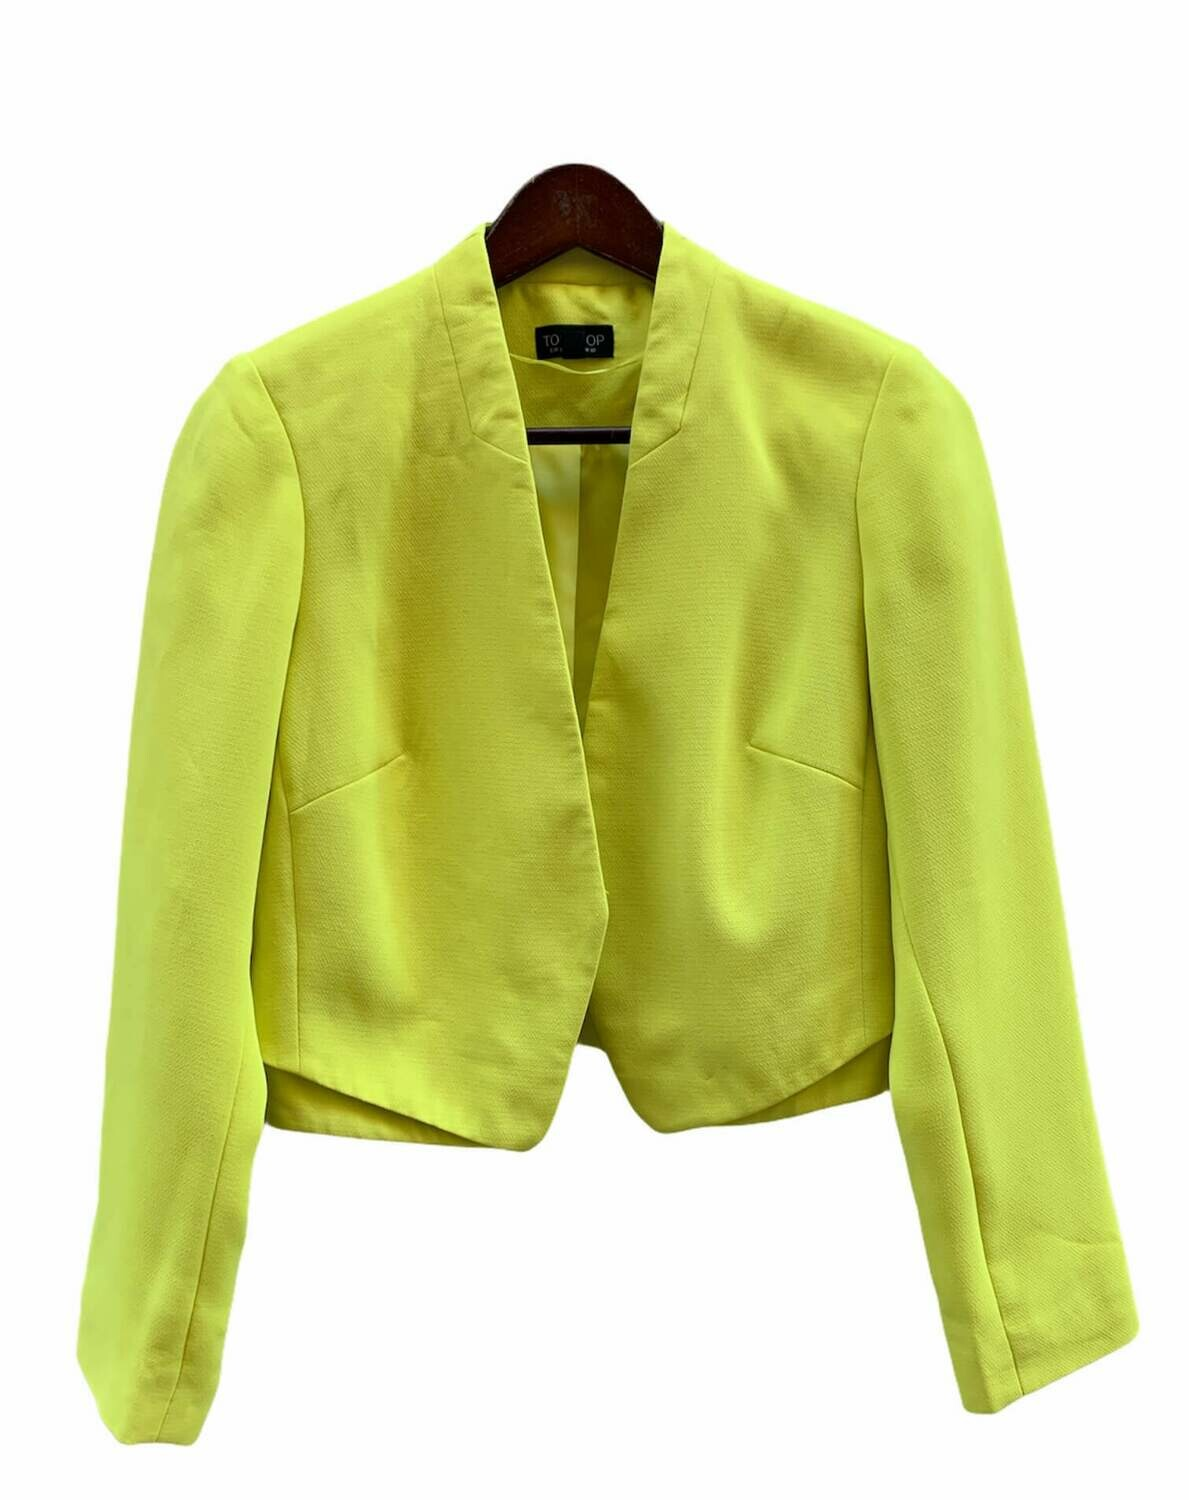 "Chaqueta torerita ""TOP SHOP"""